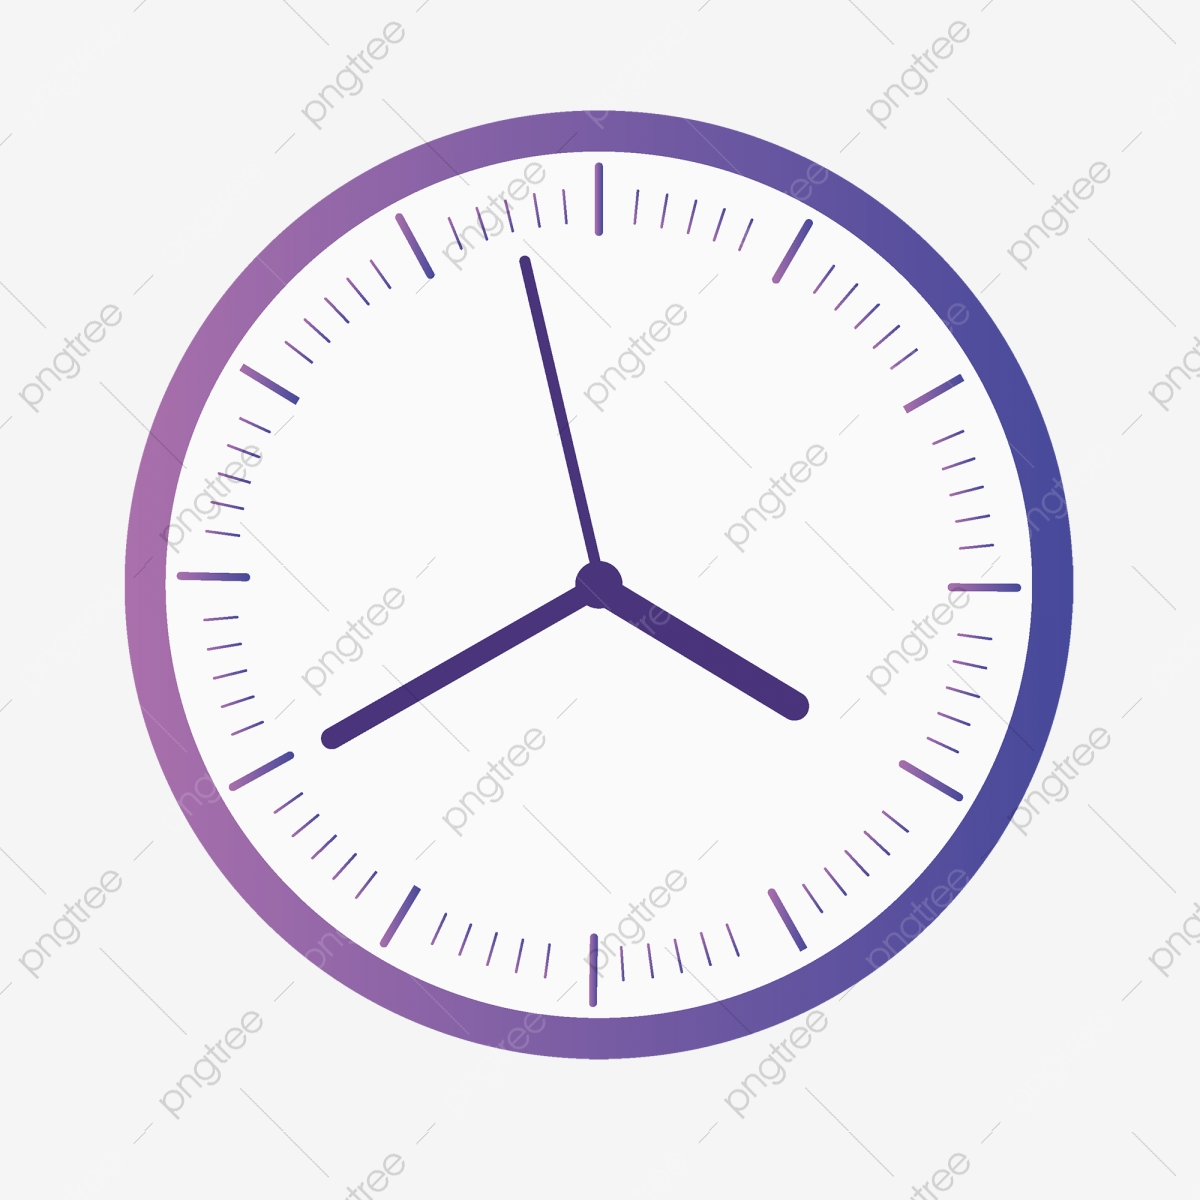 Circular Simple Digital Clock, Clock Clipart, Digital, Clock PNG